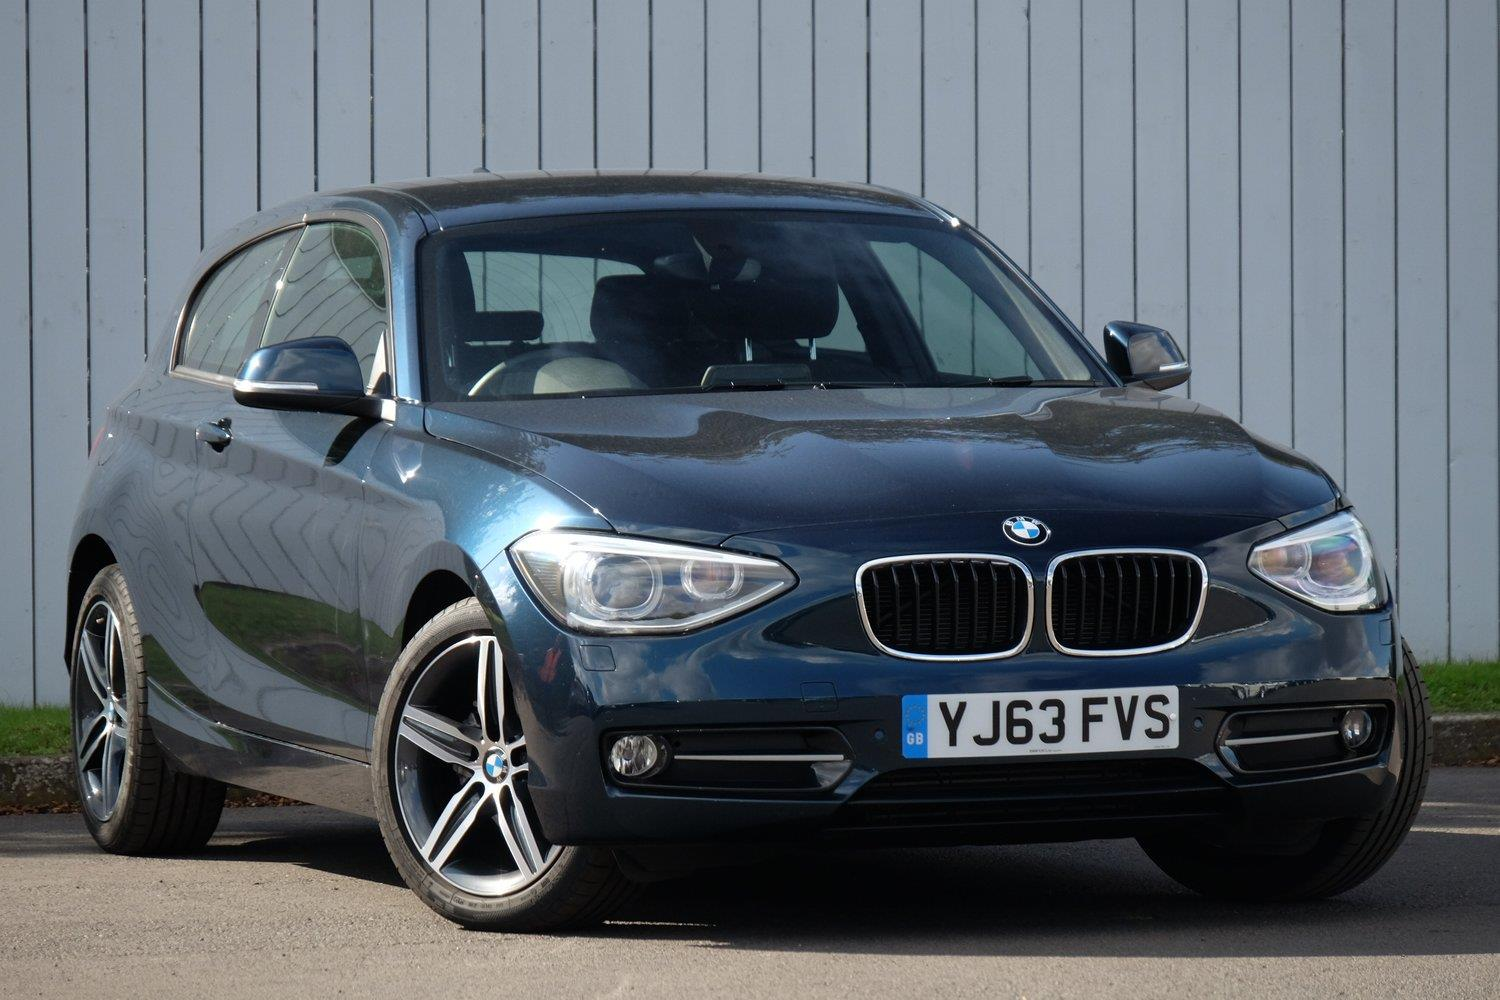 BMW 1 Series 3-door Sports Hatch YJ63FVS - Image 1